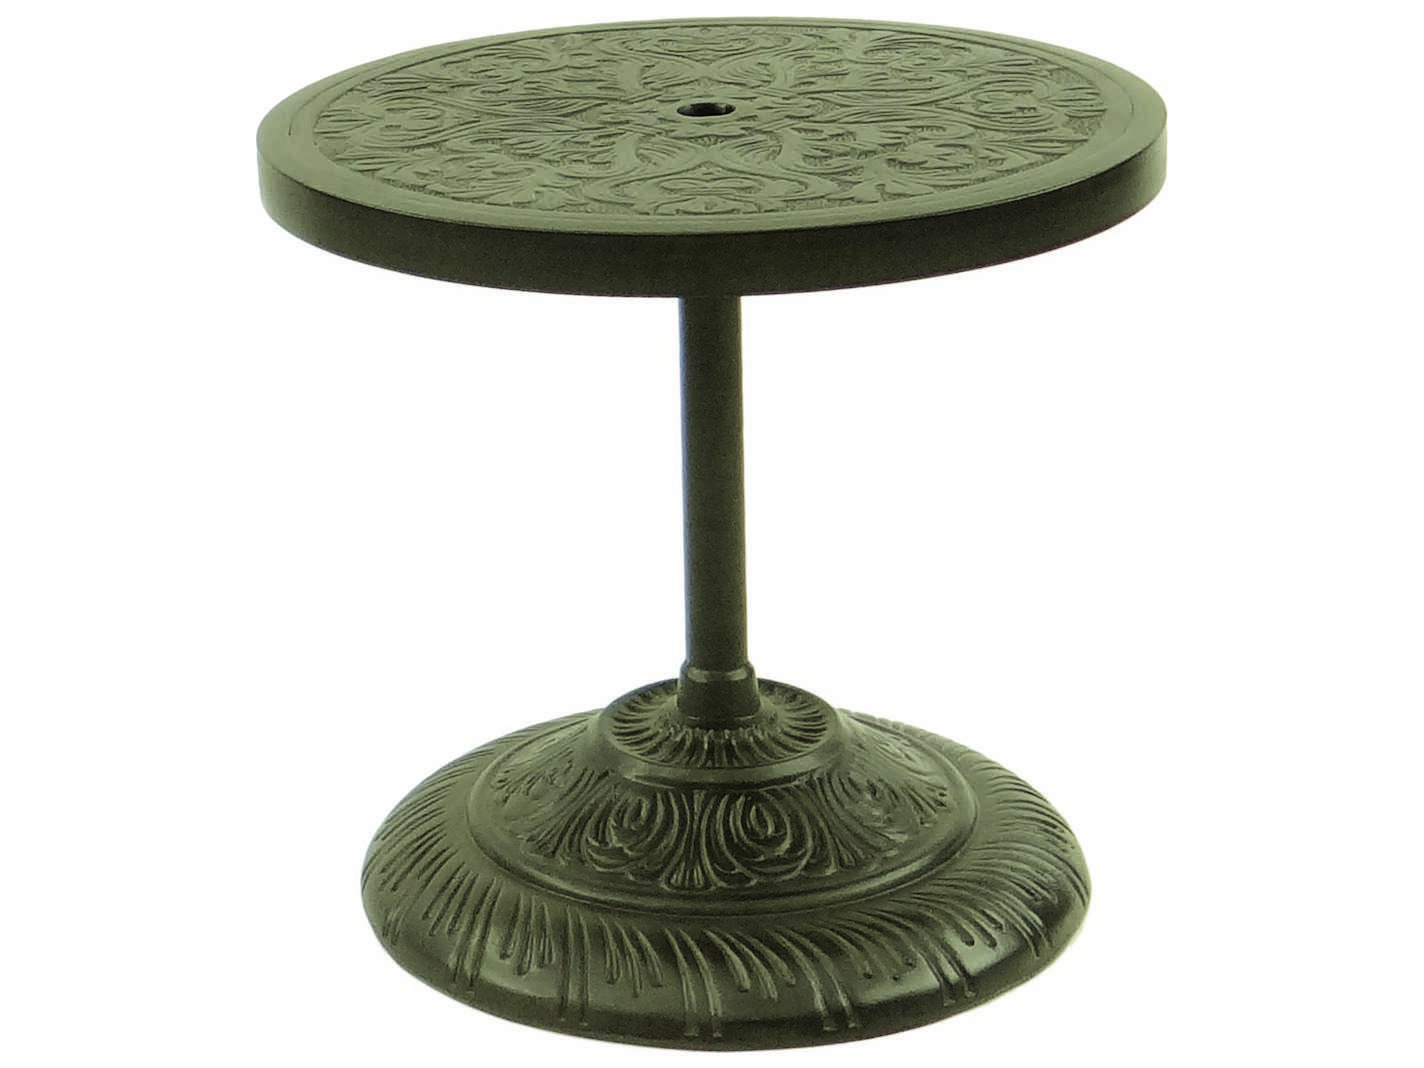 polished aluminum side table professional party rentals target gold castelle cast round umbrella base outdoor stand wooden threshold strips for carpet height diy rustic coffee and